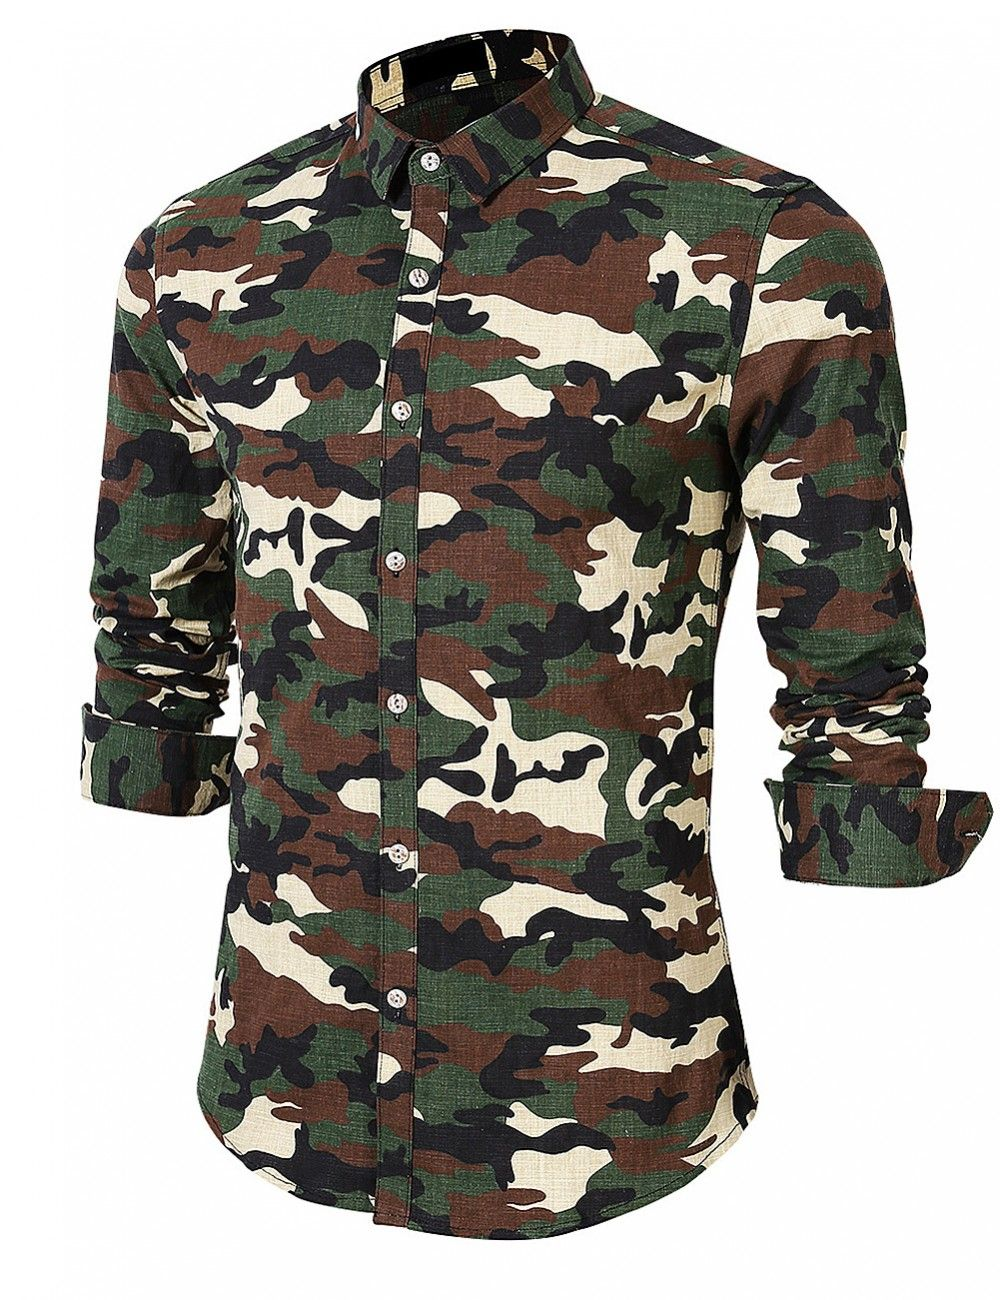 8adb90395 YesFashion Men's Cool Print Long Sleeve Camouflage Shirt - Yesfashion.com  in Free Shipping